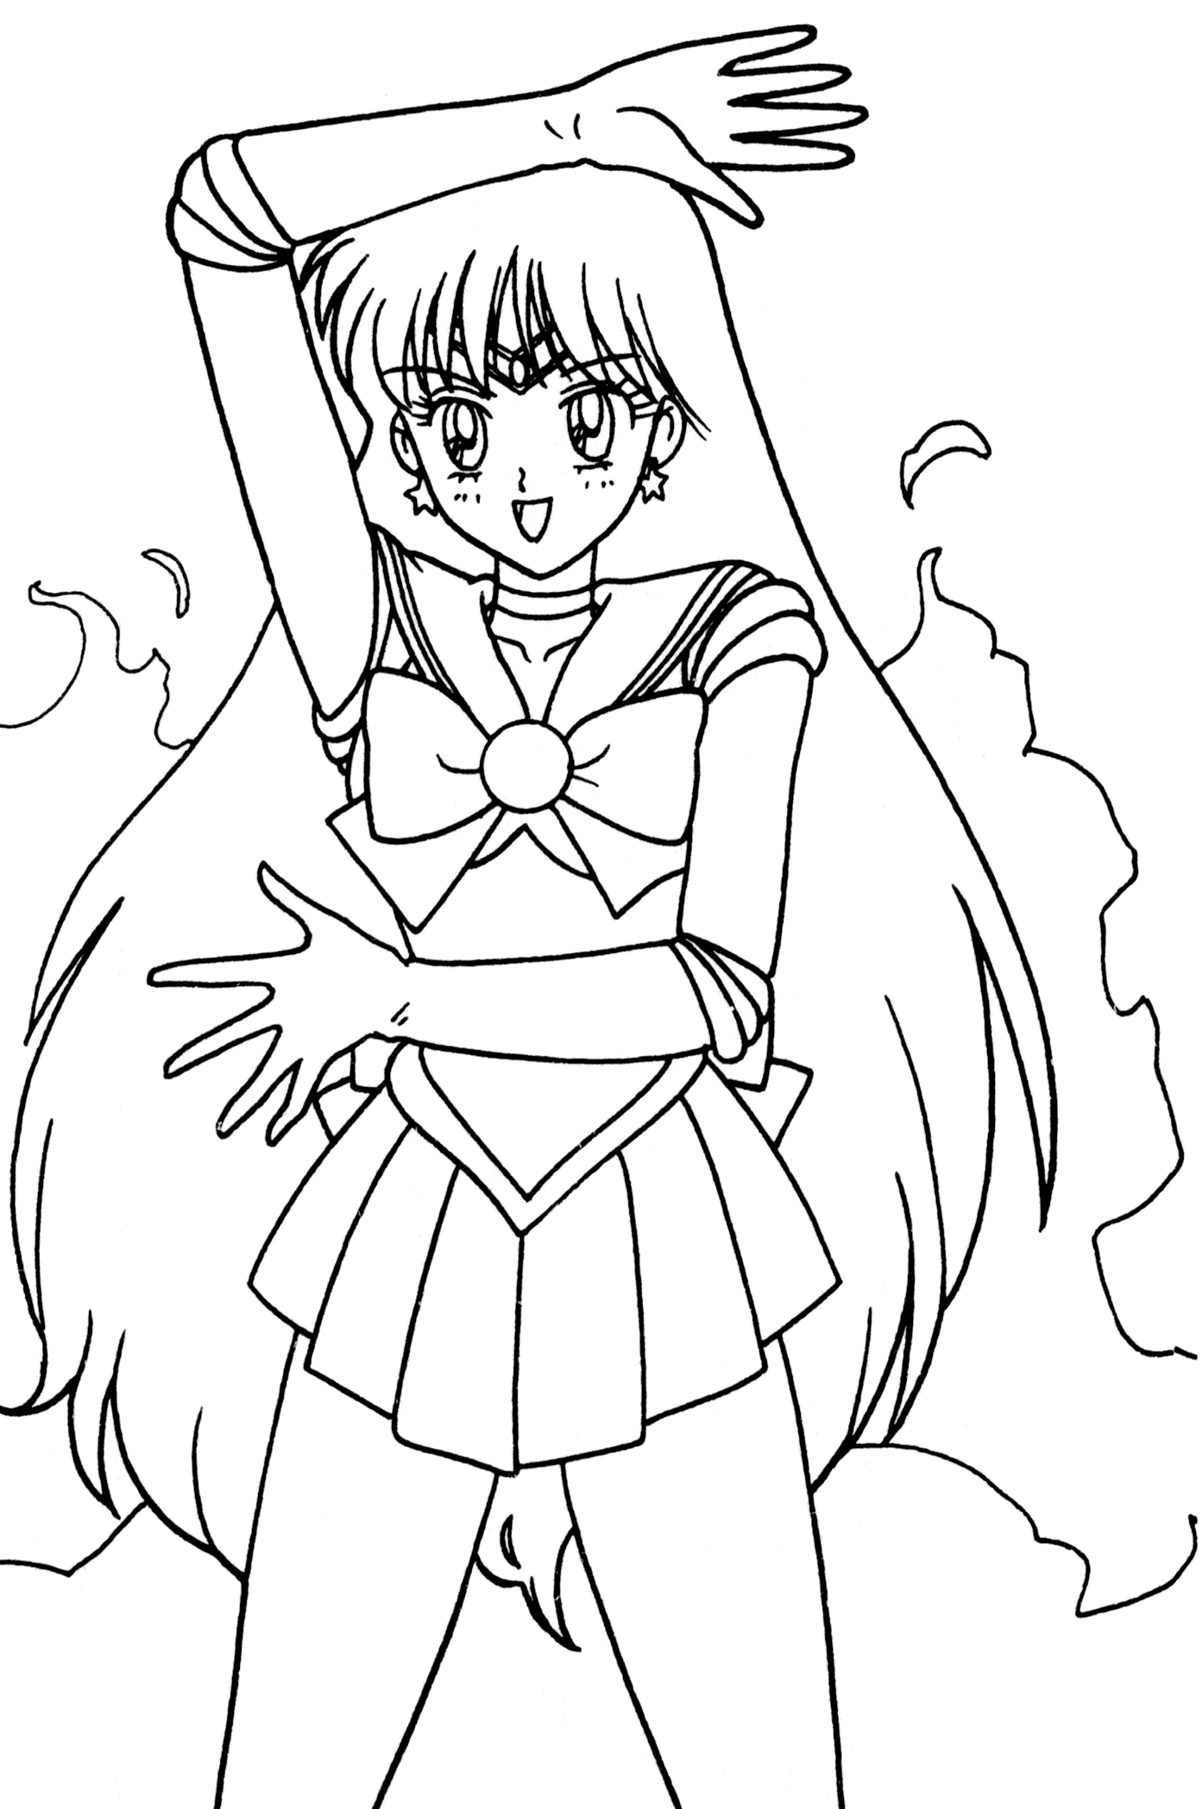 Tsuki matsuri the sailormoon coloring book archive for Mars coloring pages